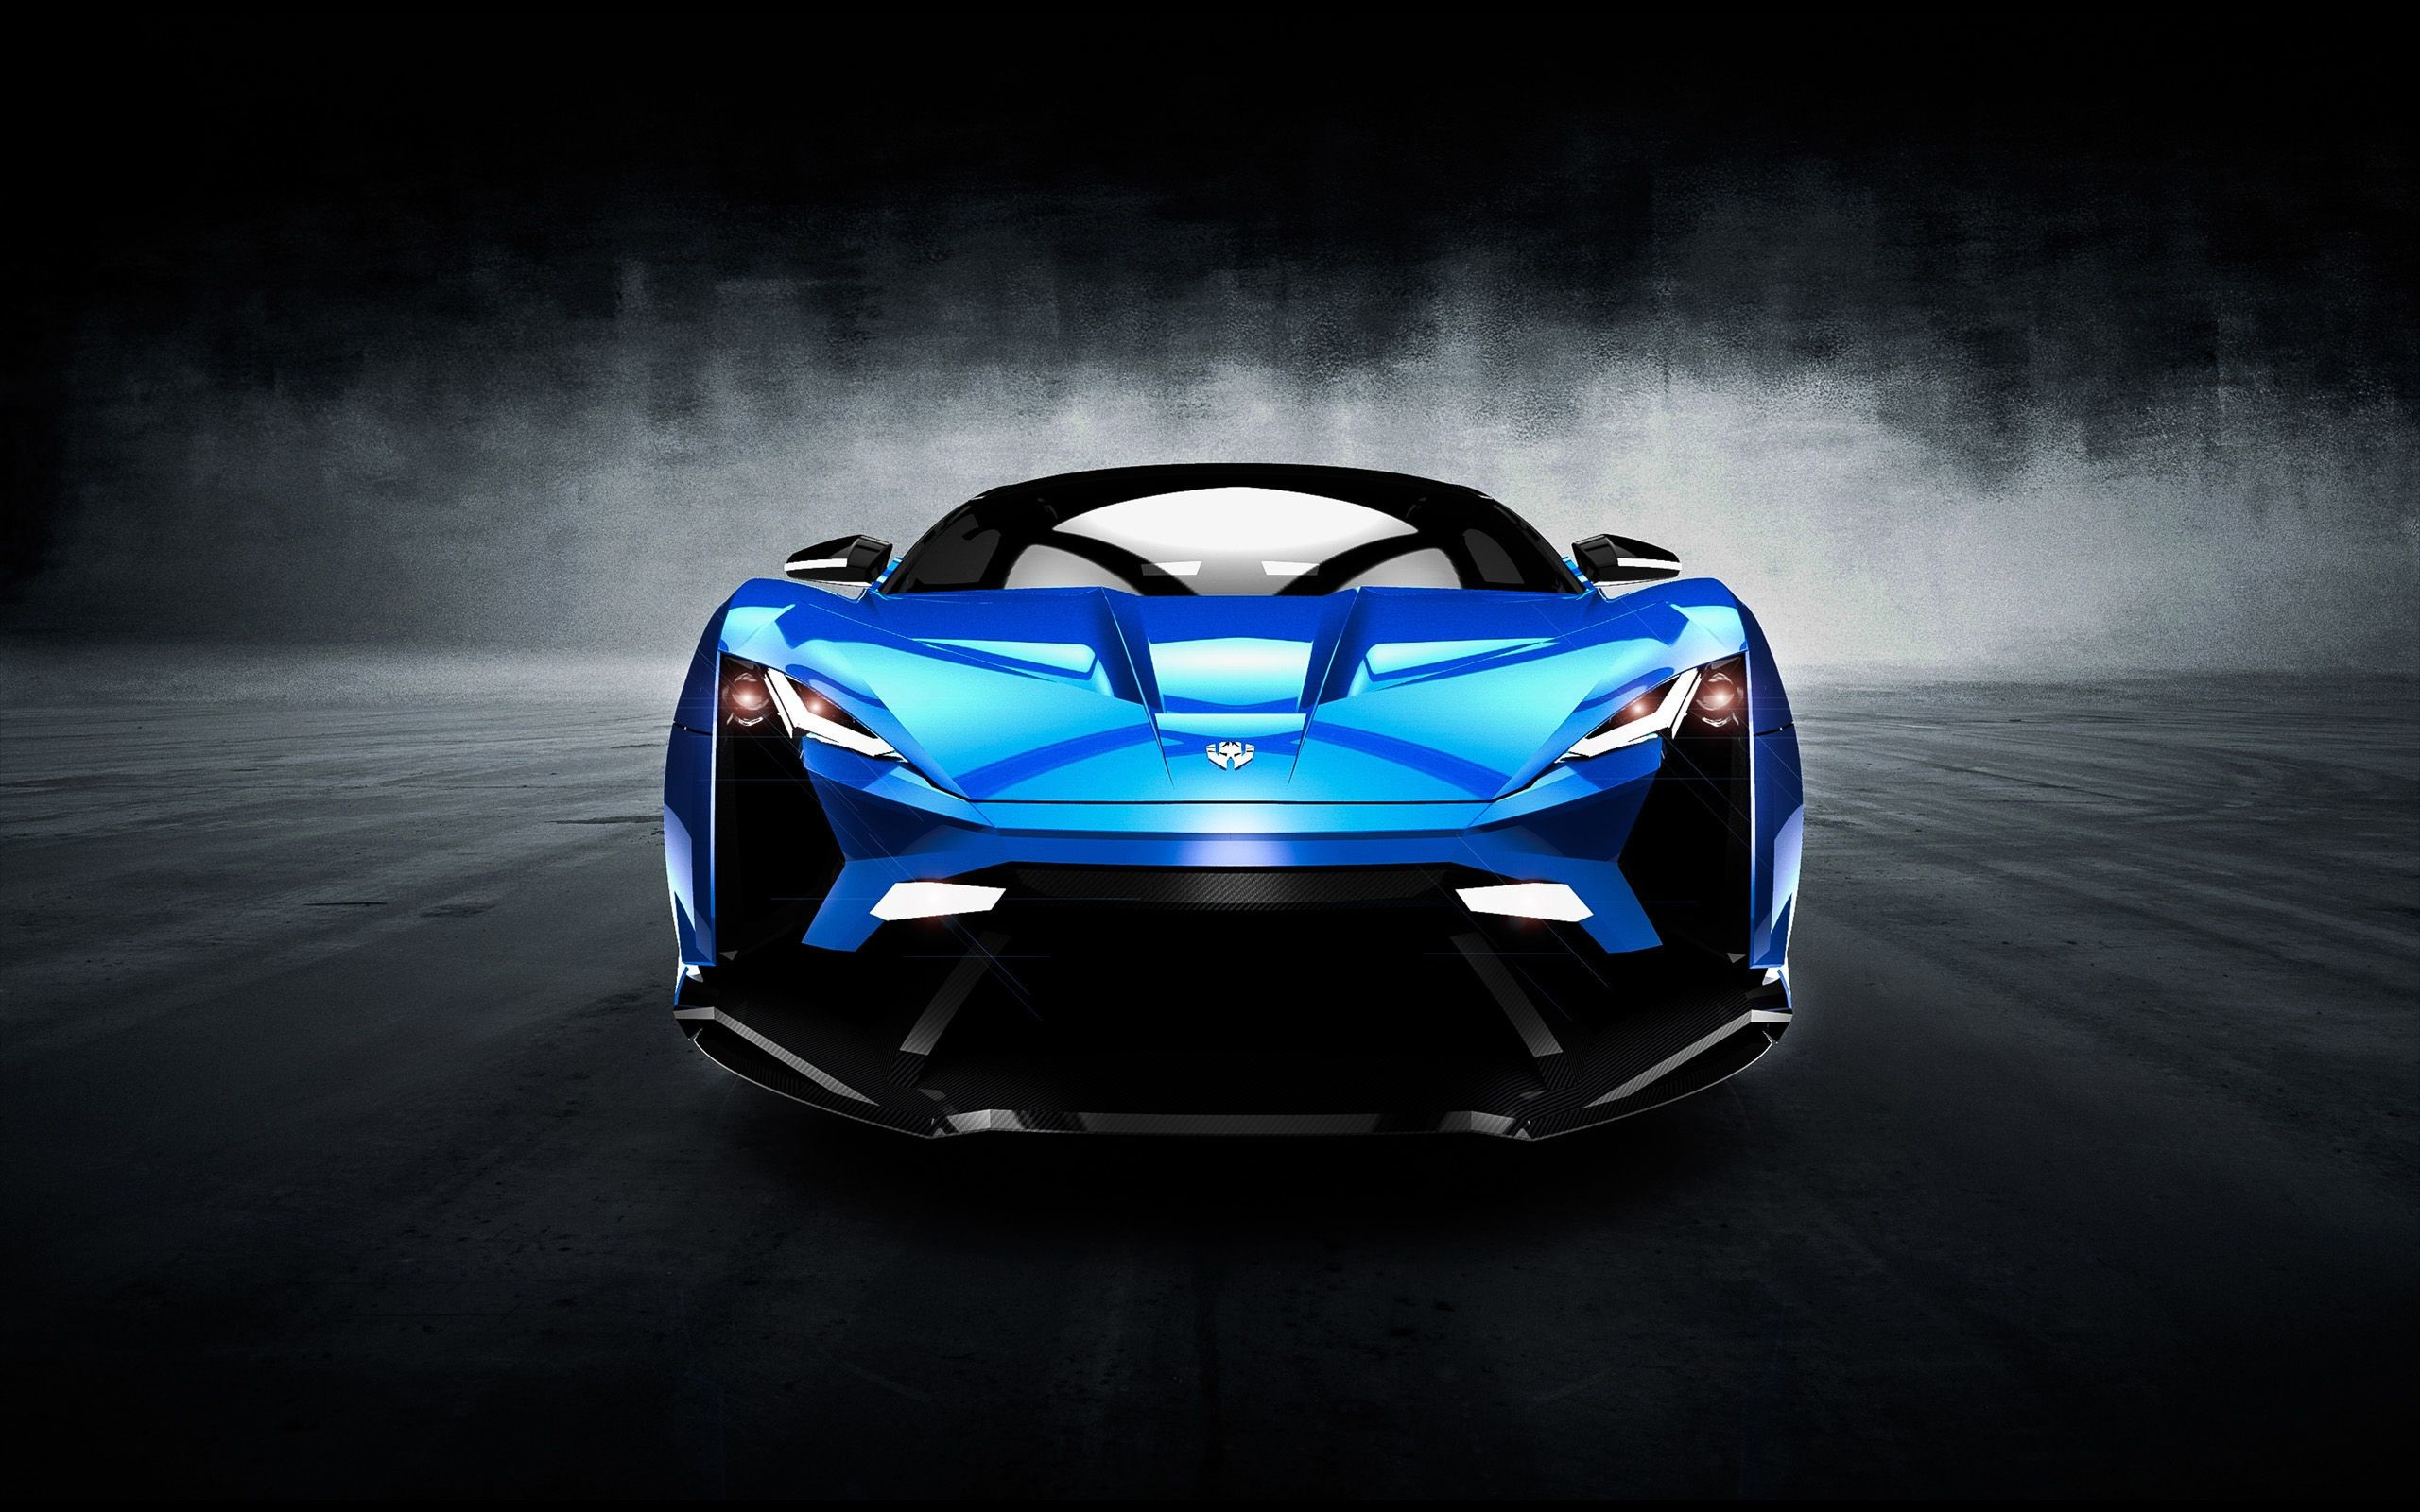 2560x1600 W Motors - SuperSport - Limited Edition Download Blue Car Sport Black  Background Wallpapers